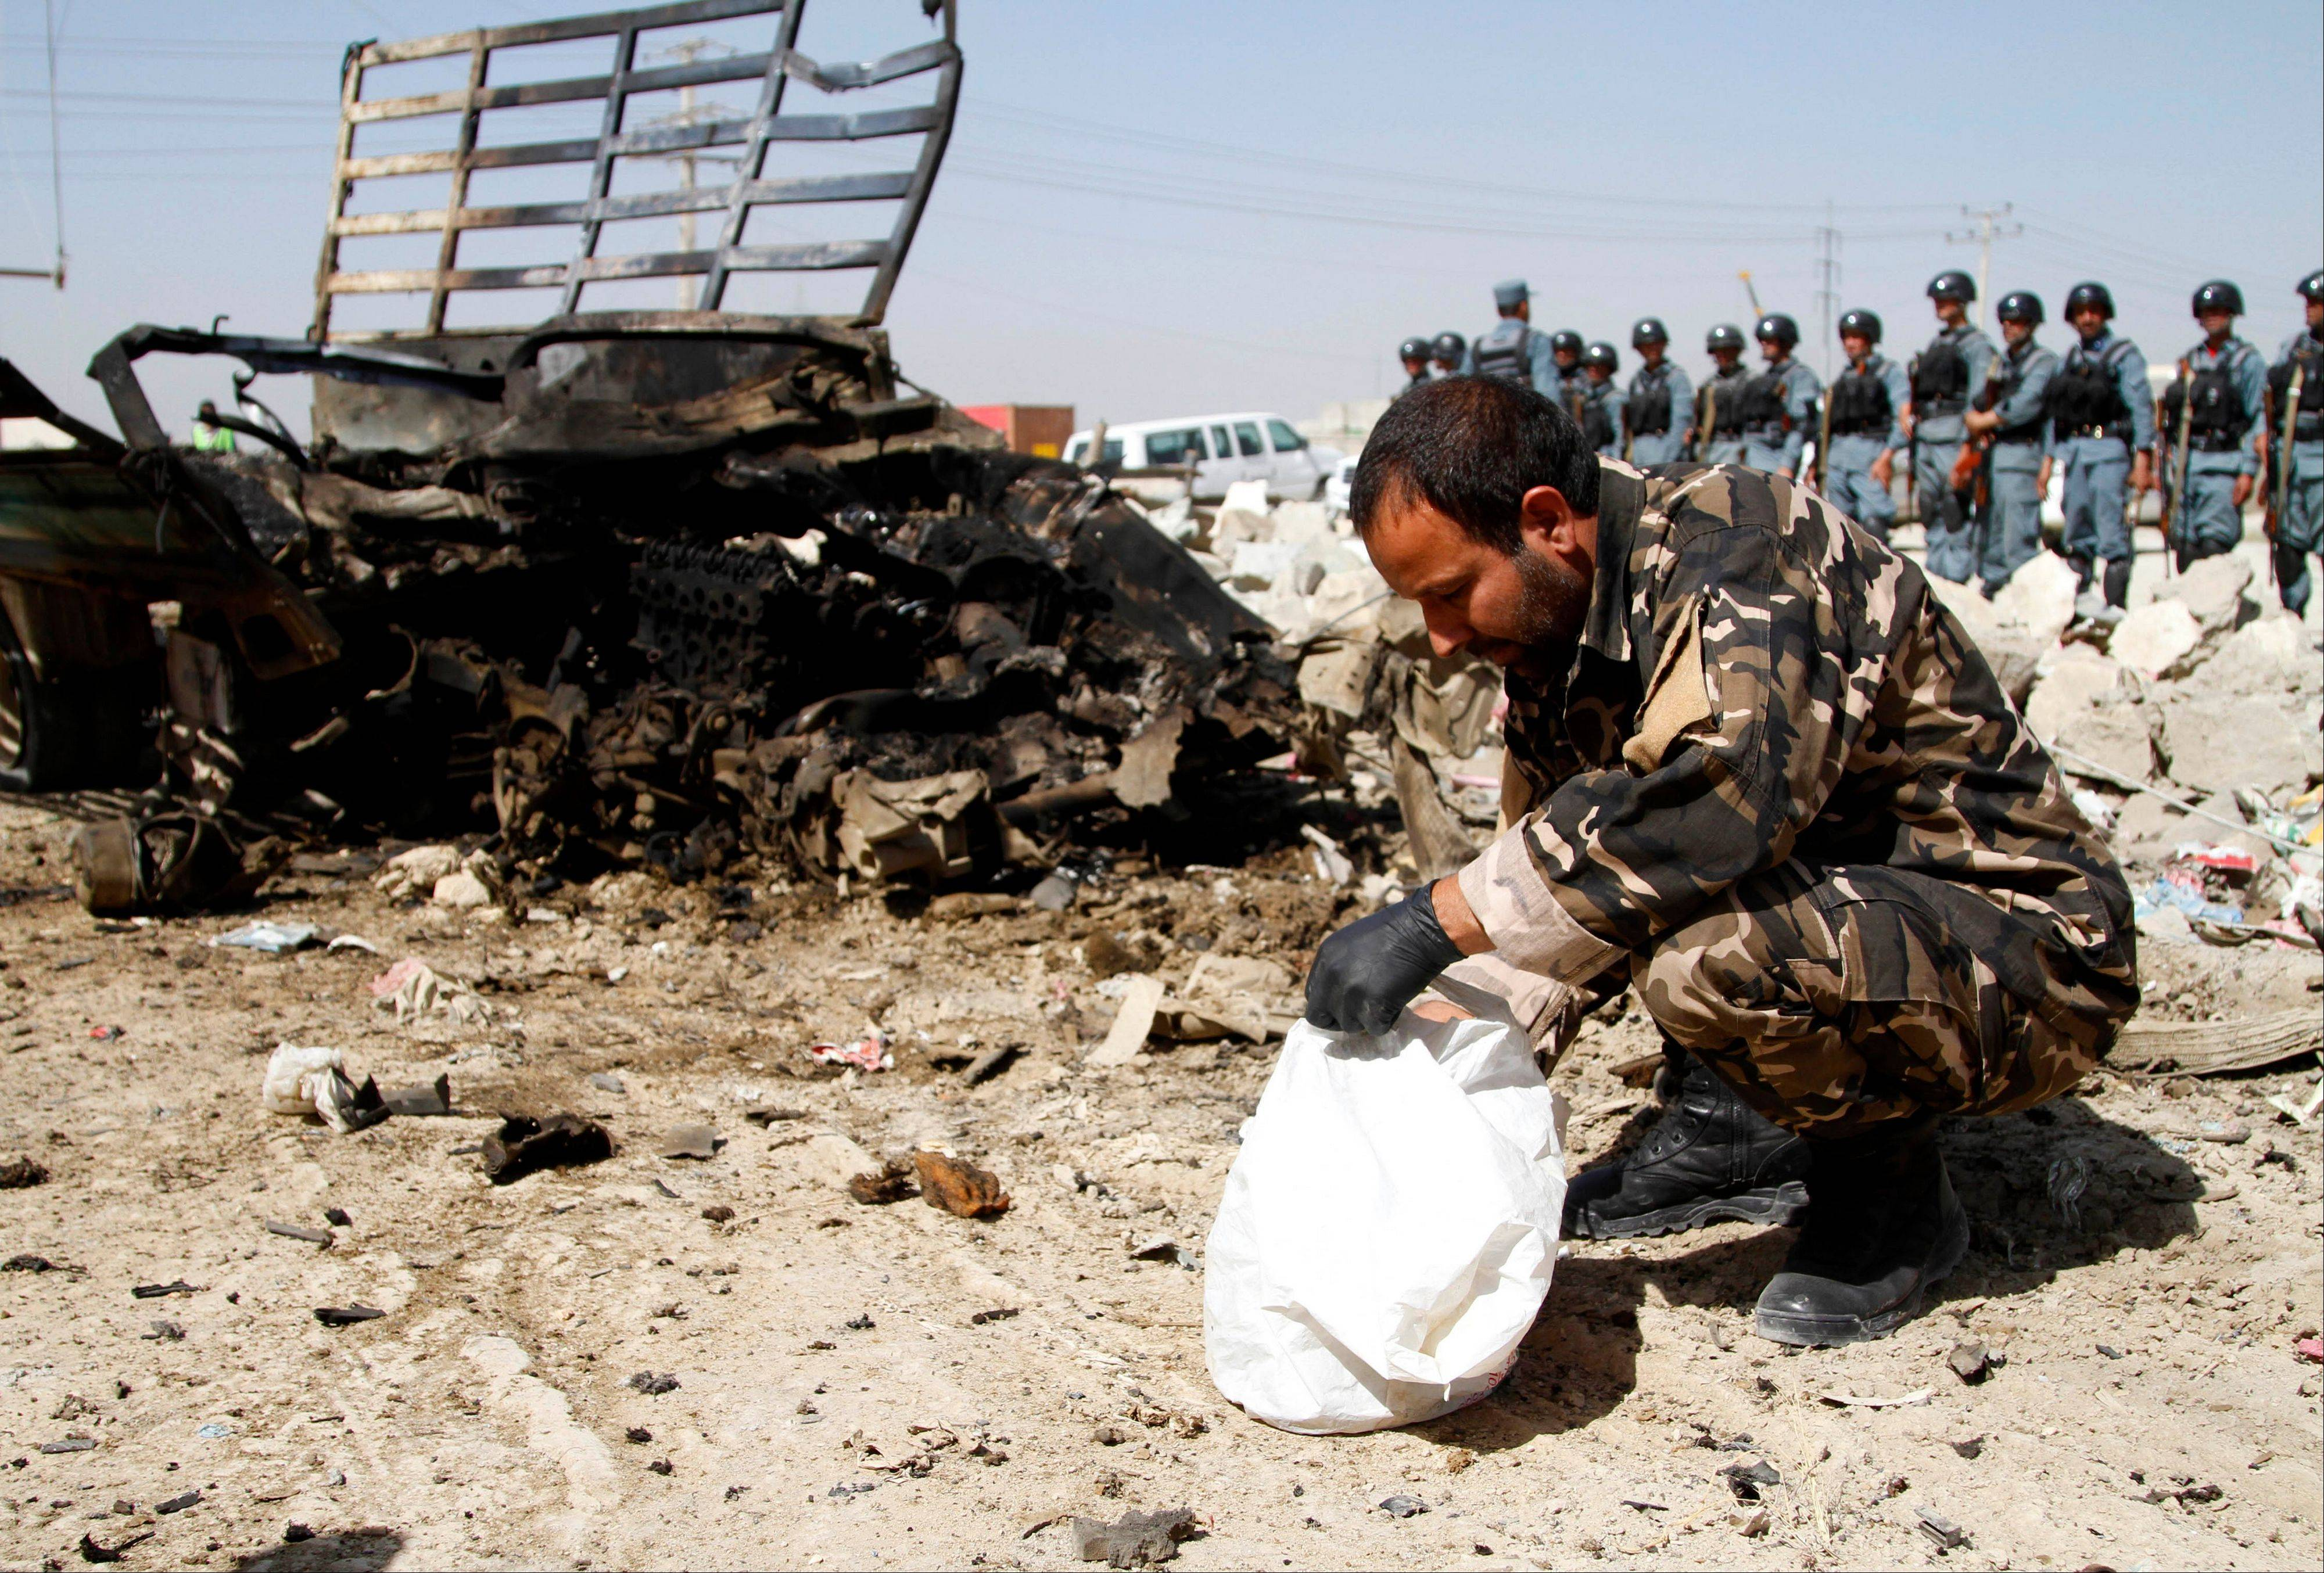 Afghan security and intelligence official inspects wreckage at the site of a suicide attack near Kabul military airport in Kabul, Afghanistan, Monday. Seven heavily armed Taliban insurgents launched a pre-dawn attack near Afghanistan�s main airport Monday, apparently targeting NATO�s airport headquarters with rocket-propelled grenades, assault rifles and at least one large bomb. Two Afghan civilians were wounded and all the attackers were killed after an hours-long battle.